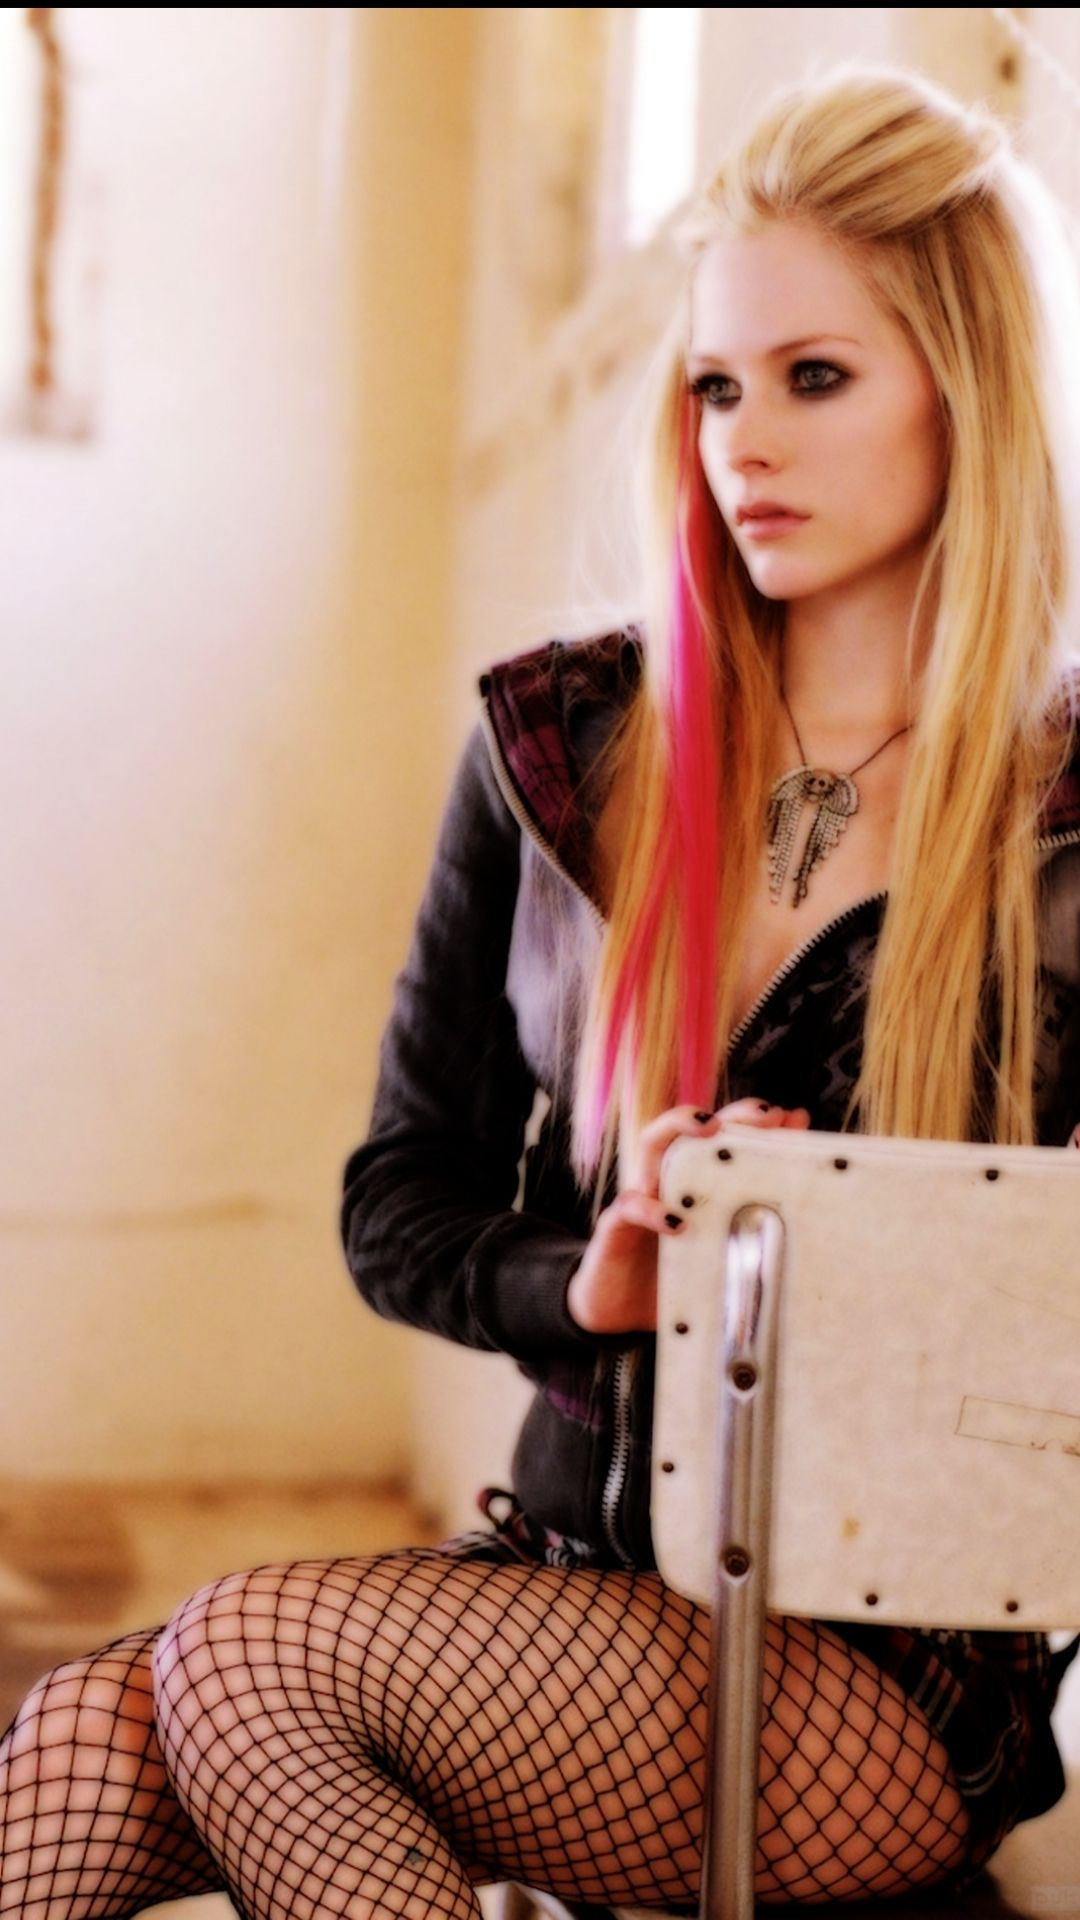 avril lavigne iphone | hd wallpapers | pinterest | avril lavigne